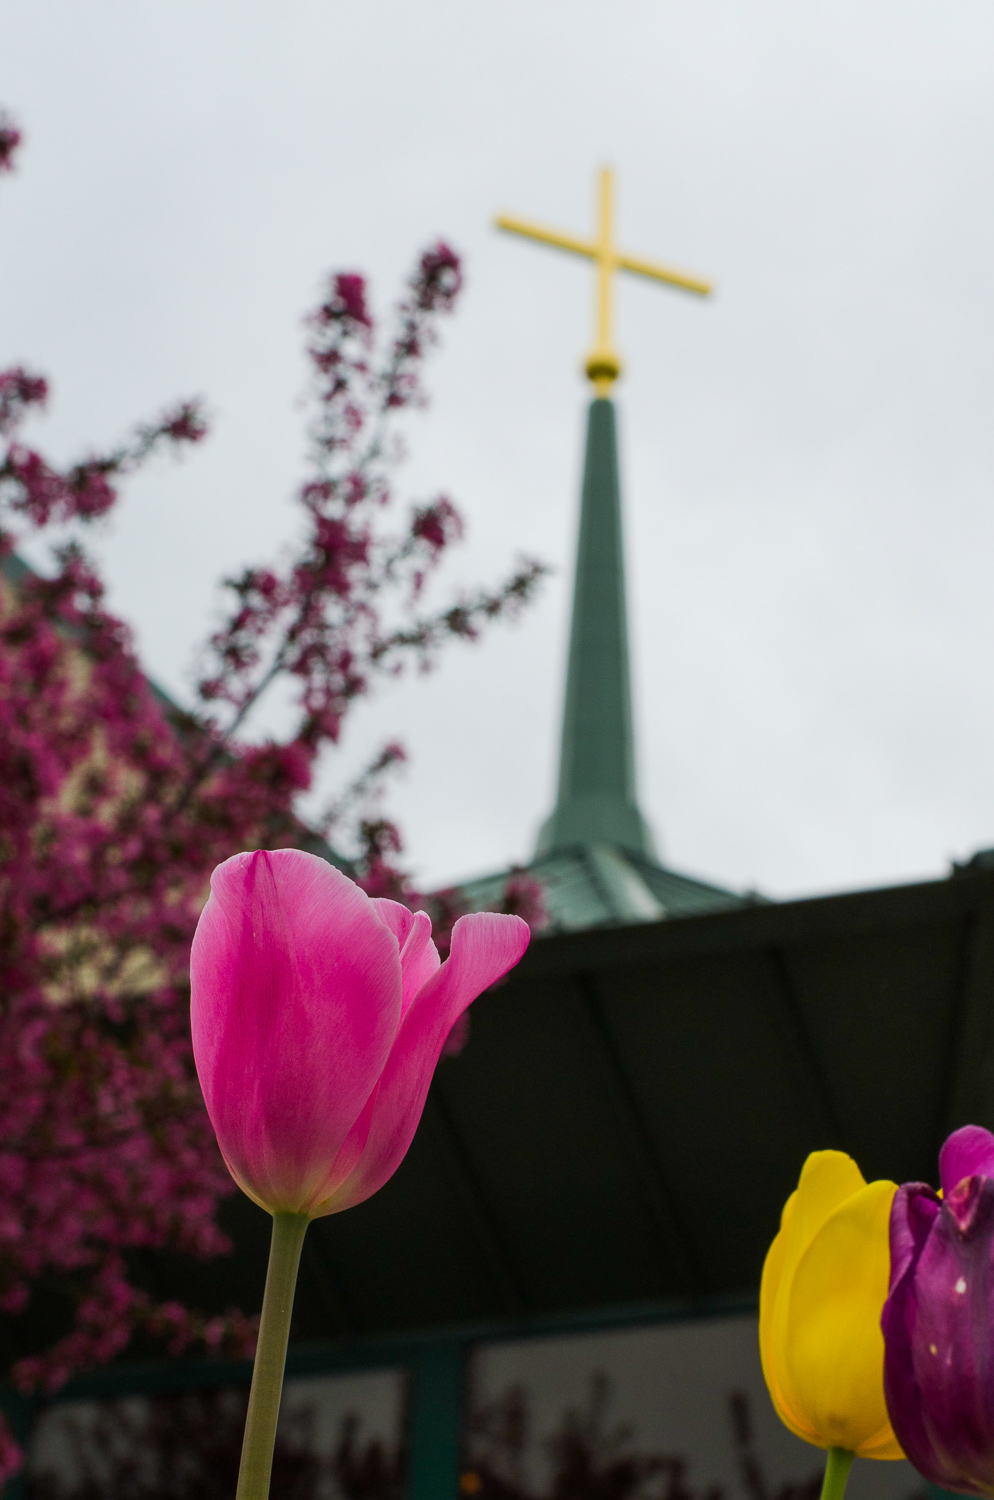 Tulips were perfect at the church